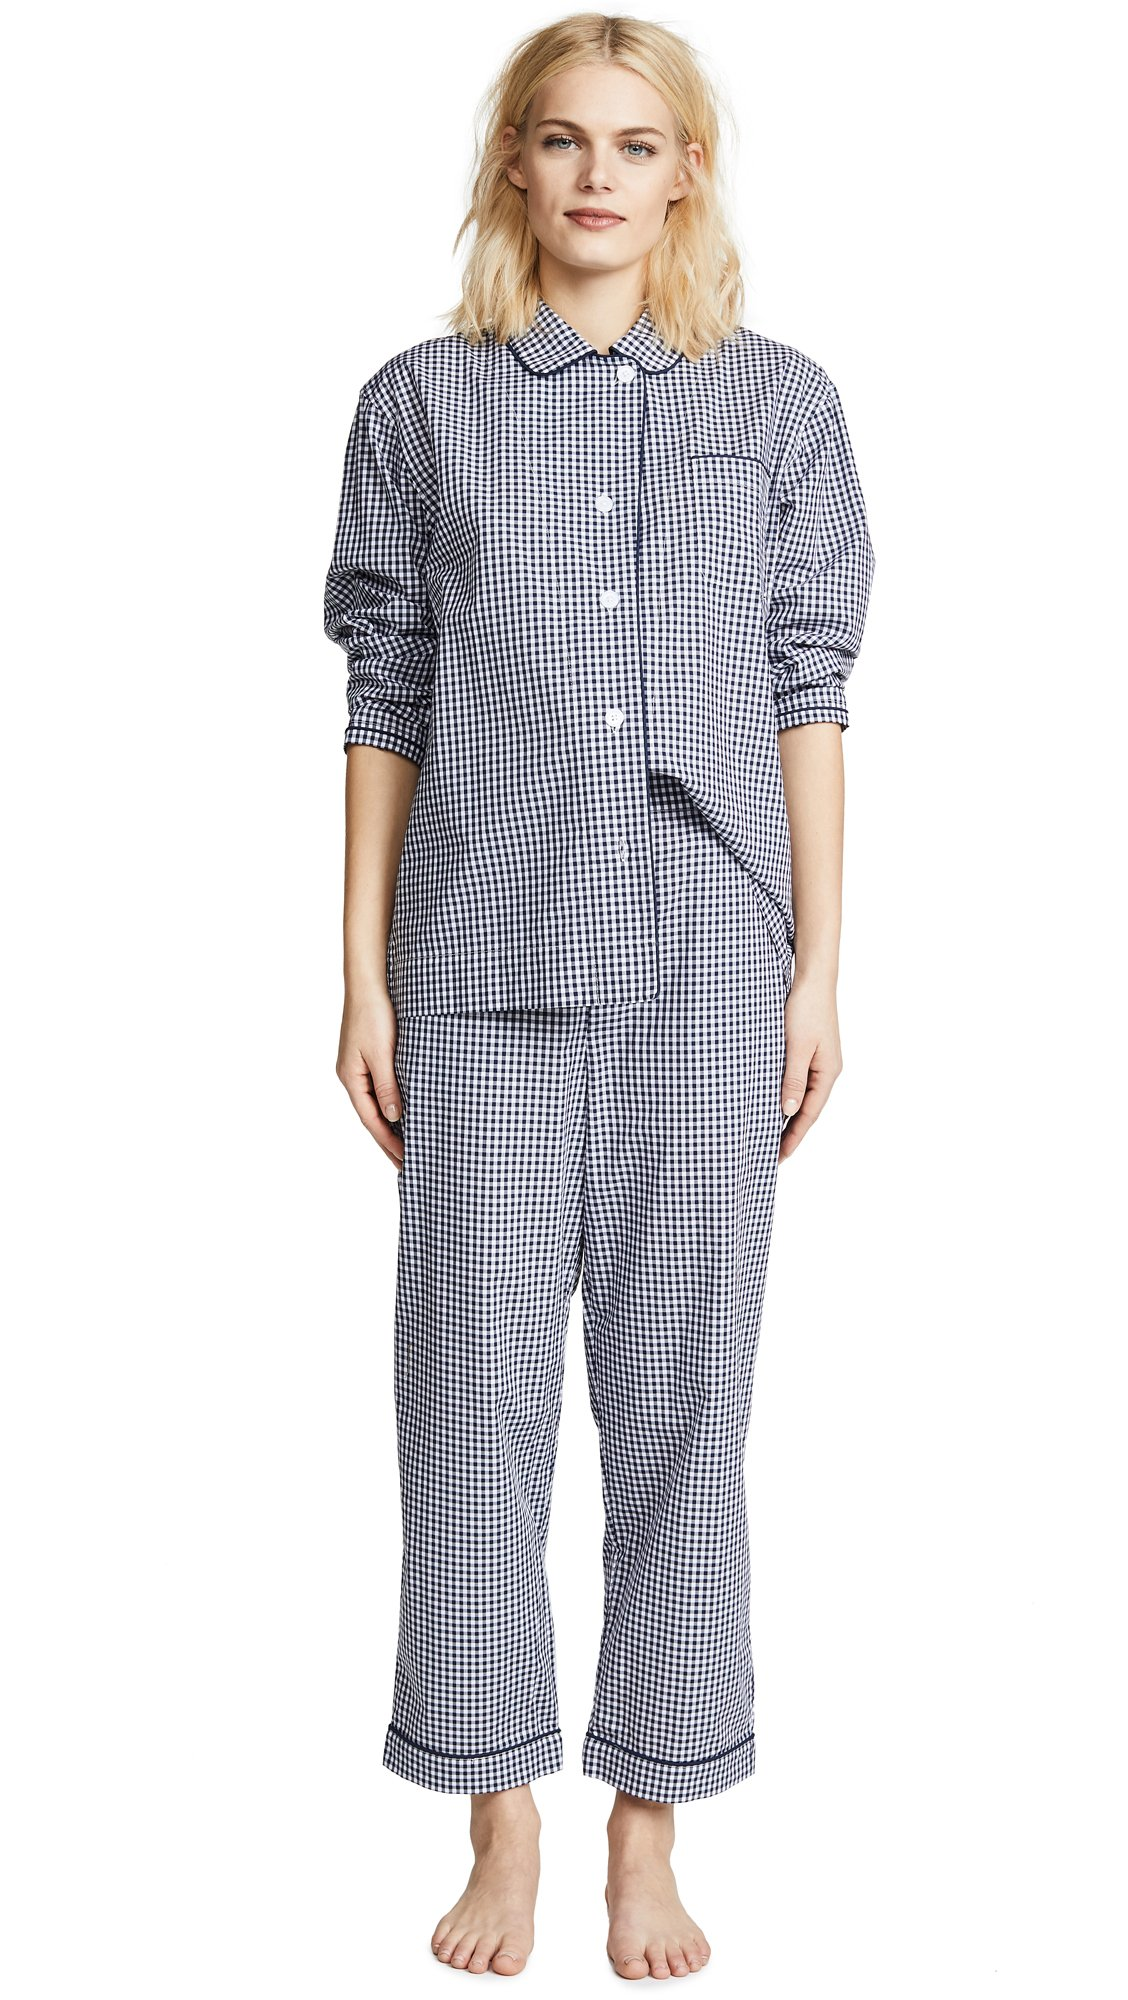 Sleepy Jones Women's Large Gingham Bishop Pajama Set, Navy, Medium